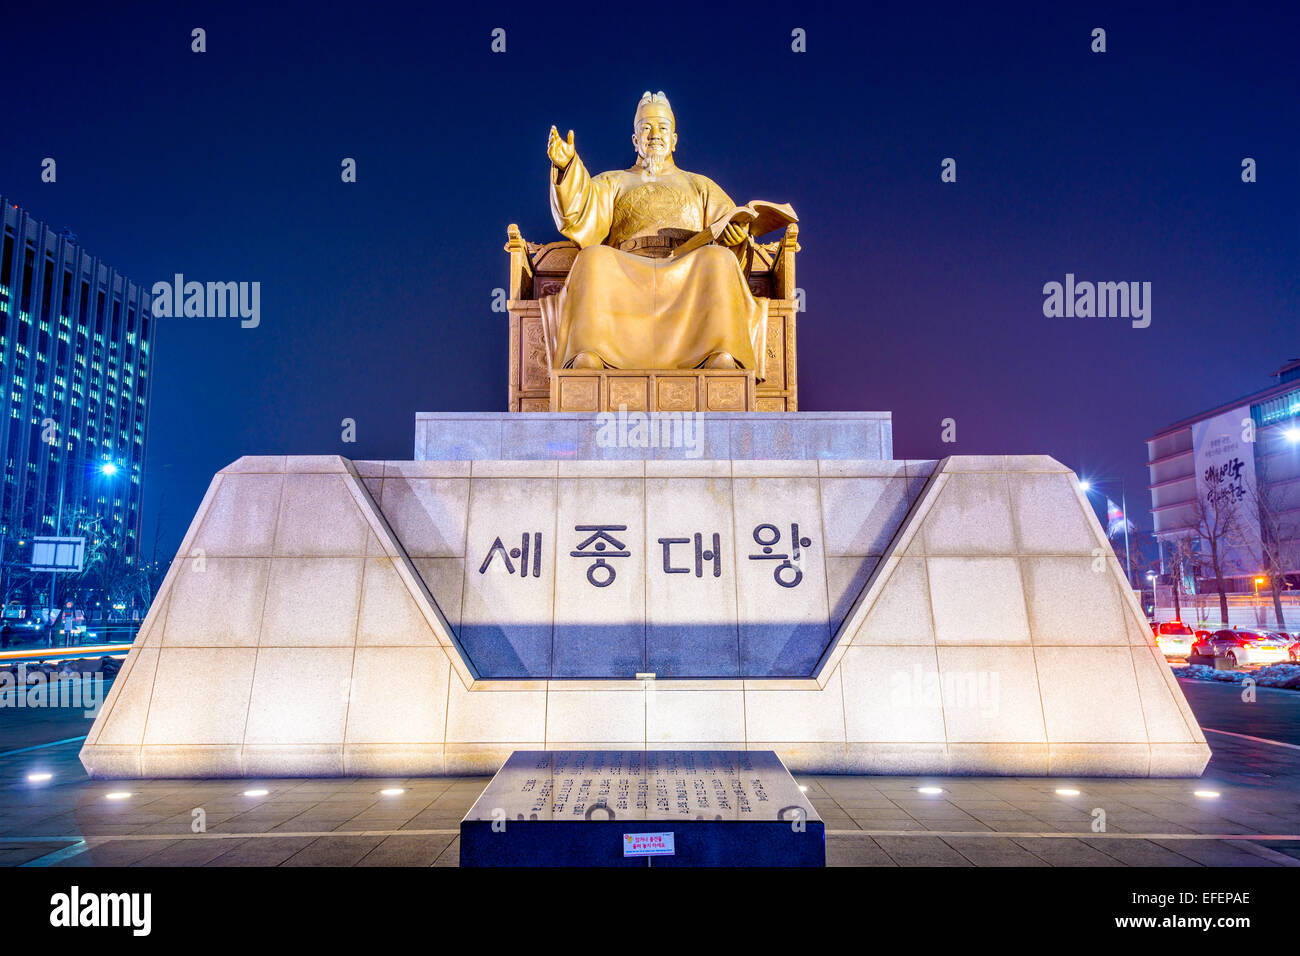 King Sejong Statue in Gwanghwamun Plaza. - Stock Image